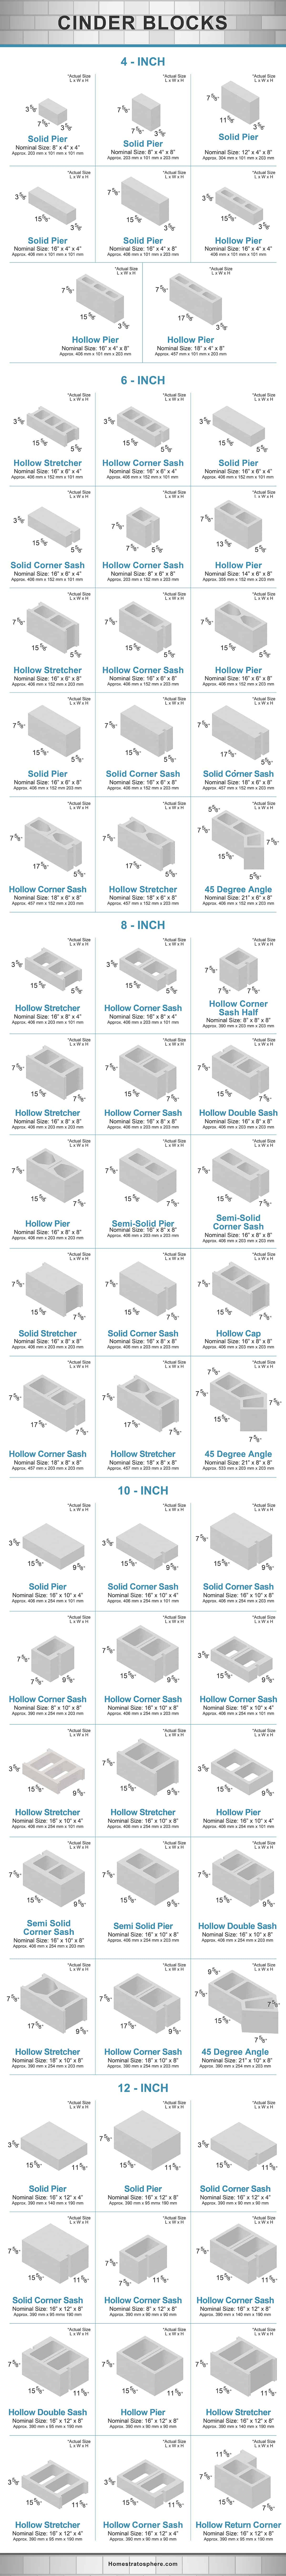 Cinder block dimensions and sizes chart by Homestratosphere